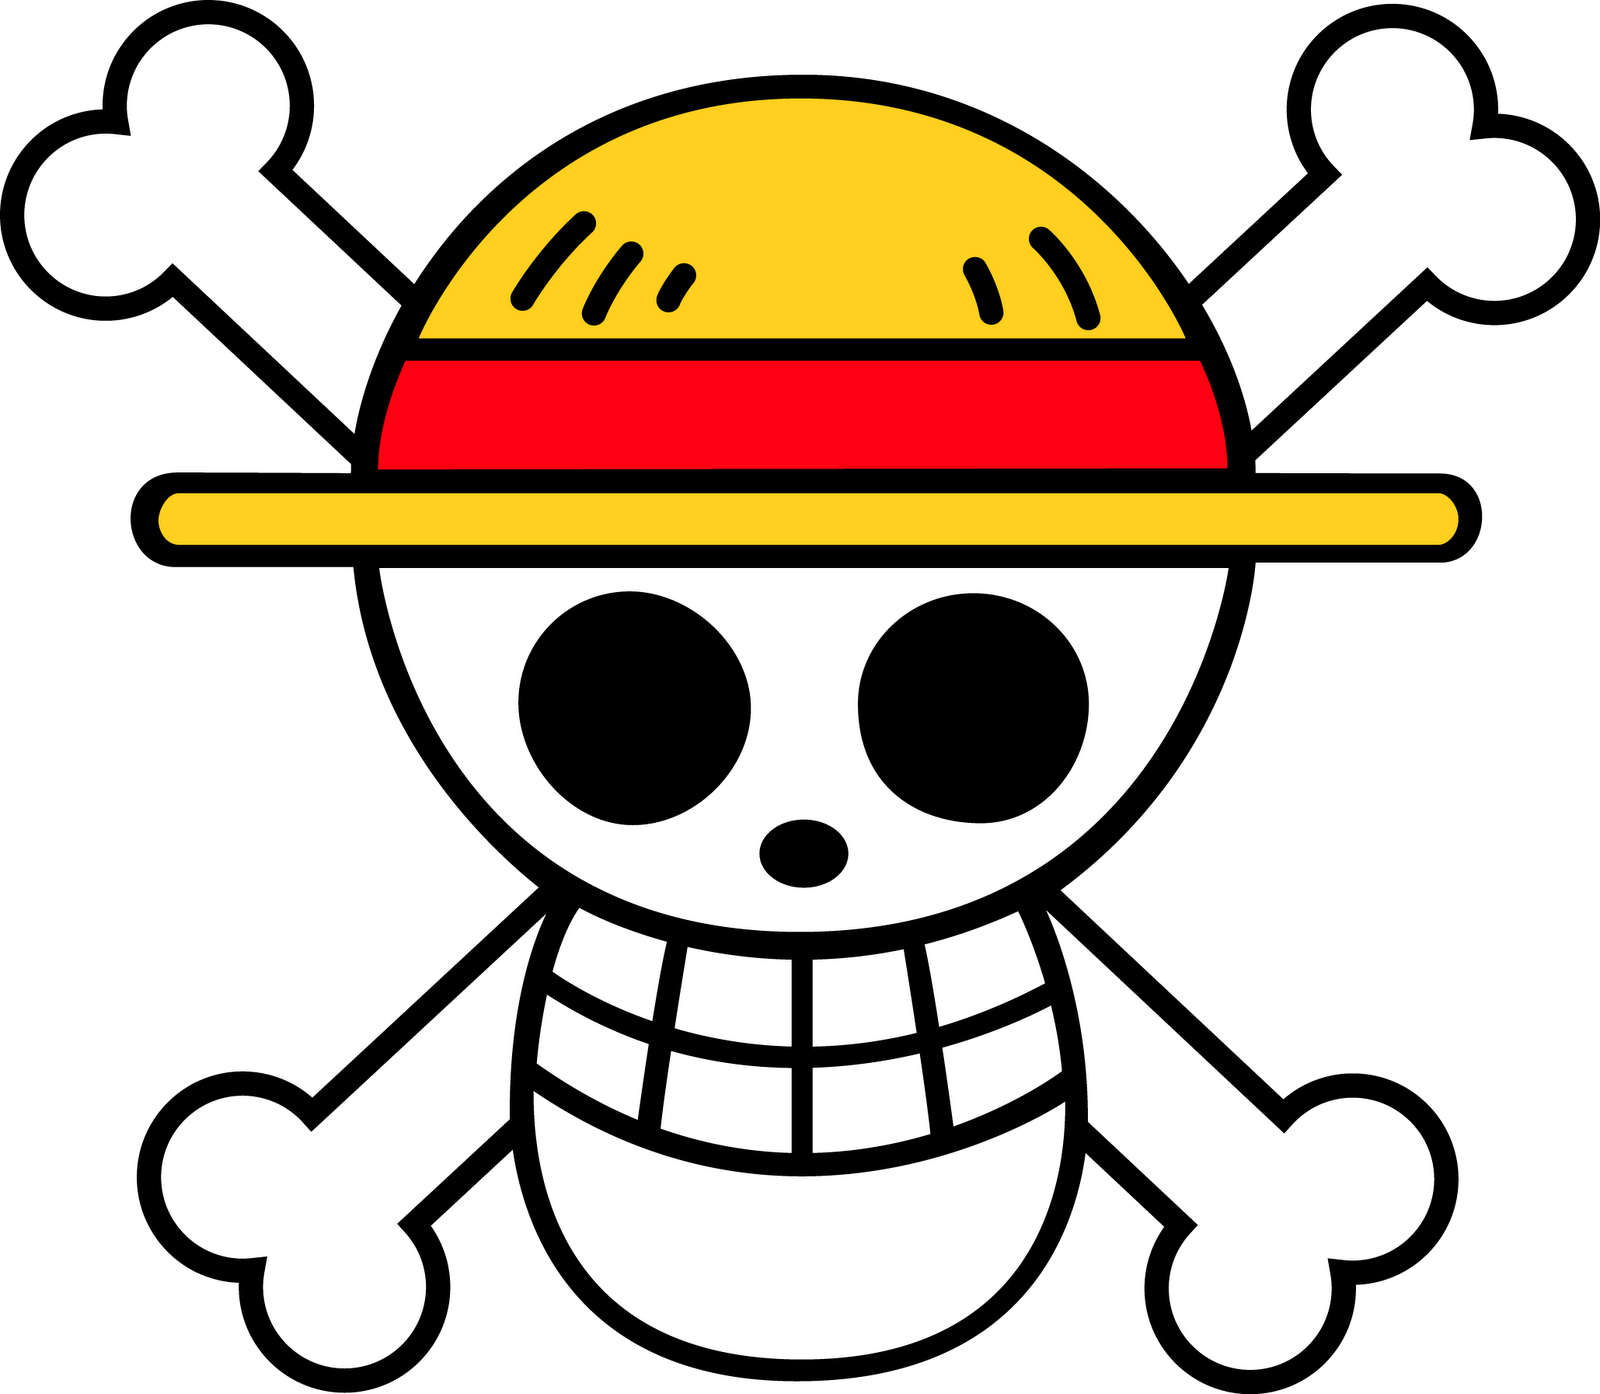 This Logo Is From The Show One Piece And I Like It Because Really Captures Fun Playfulness Of